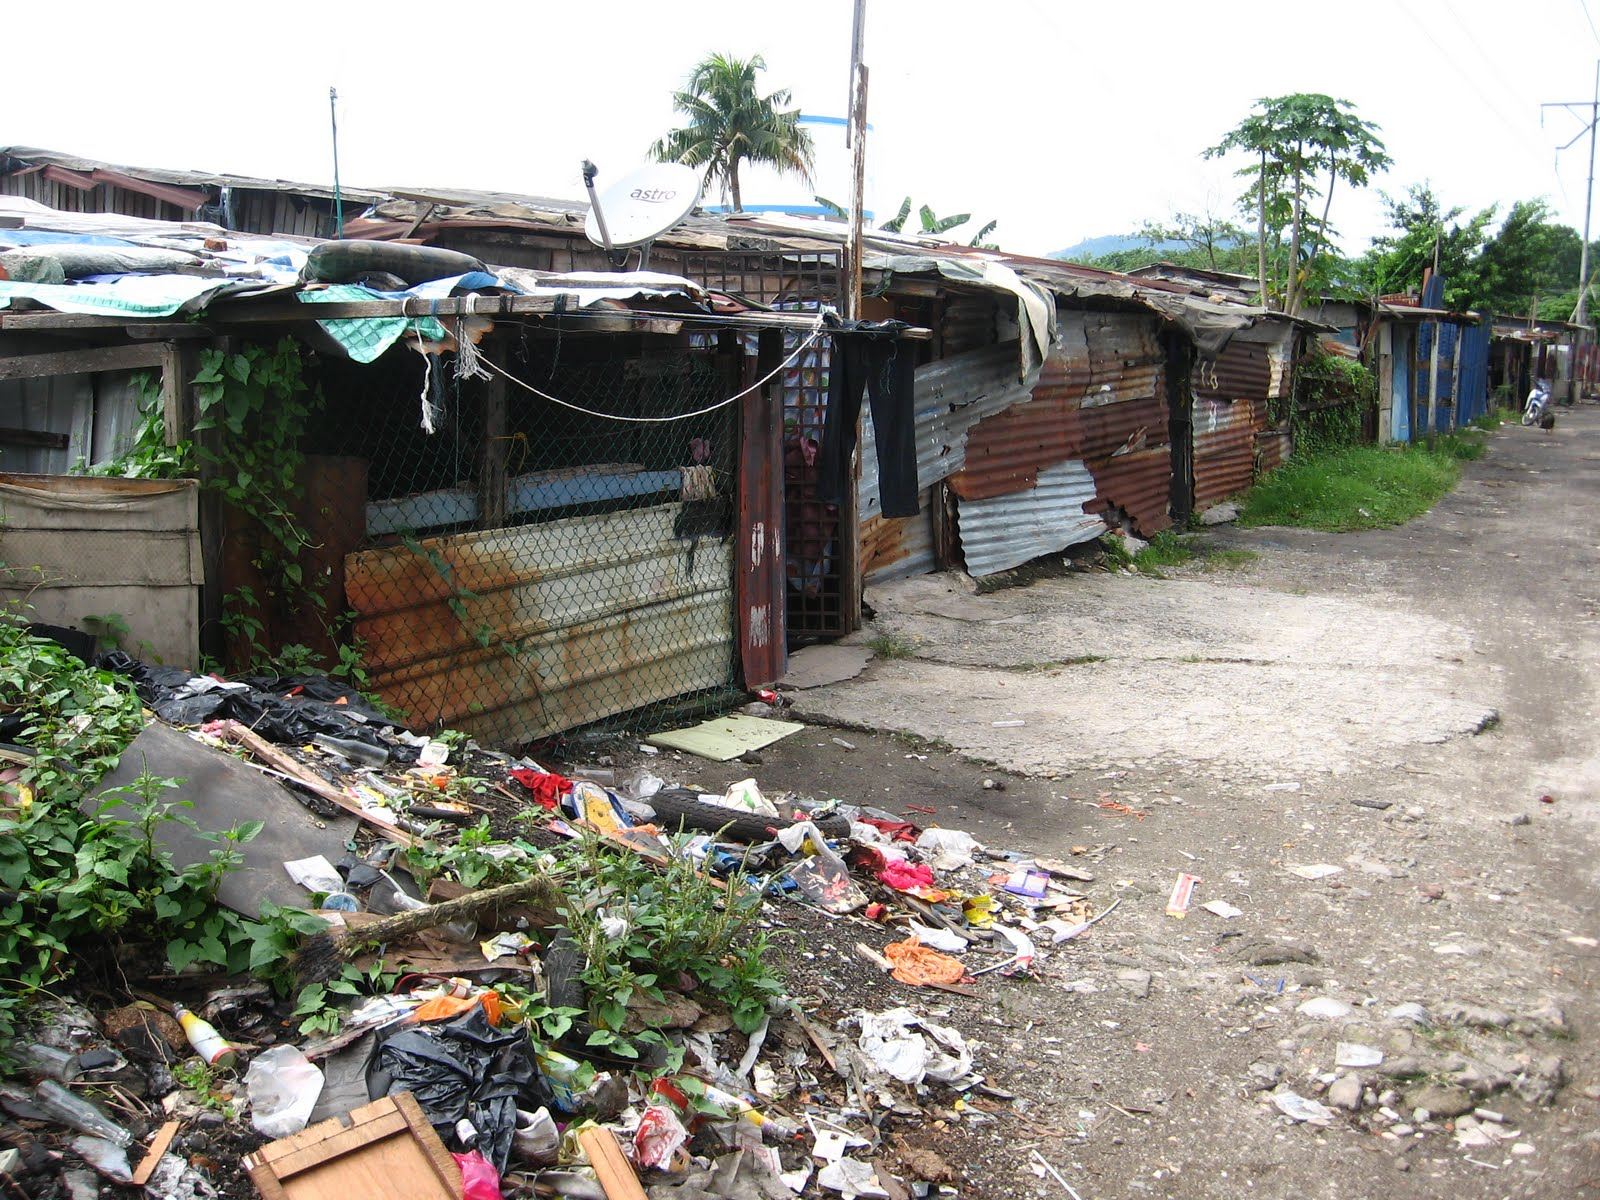 the real slums of the world The world given to us by god is full of all the bounties whereas the world of these slum children is full of poverty and hunger the world which they see is not the real world their world is confined to the narrow, dusty streets of the slum.